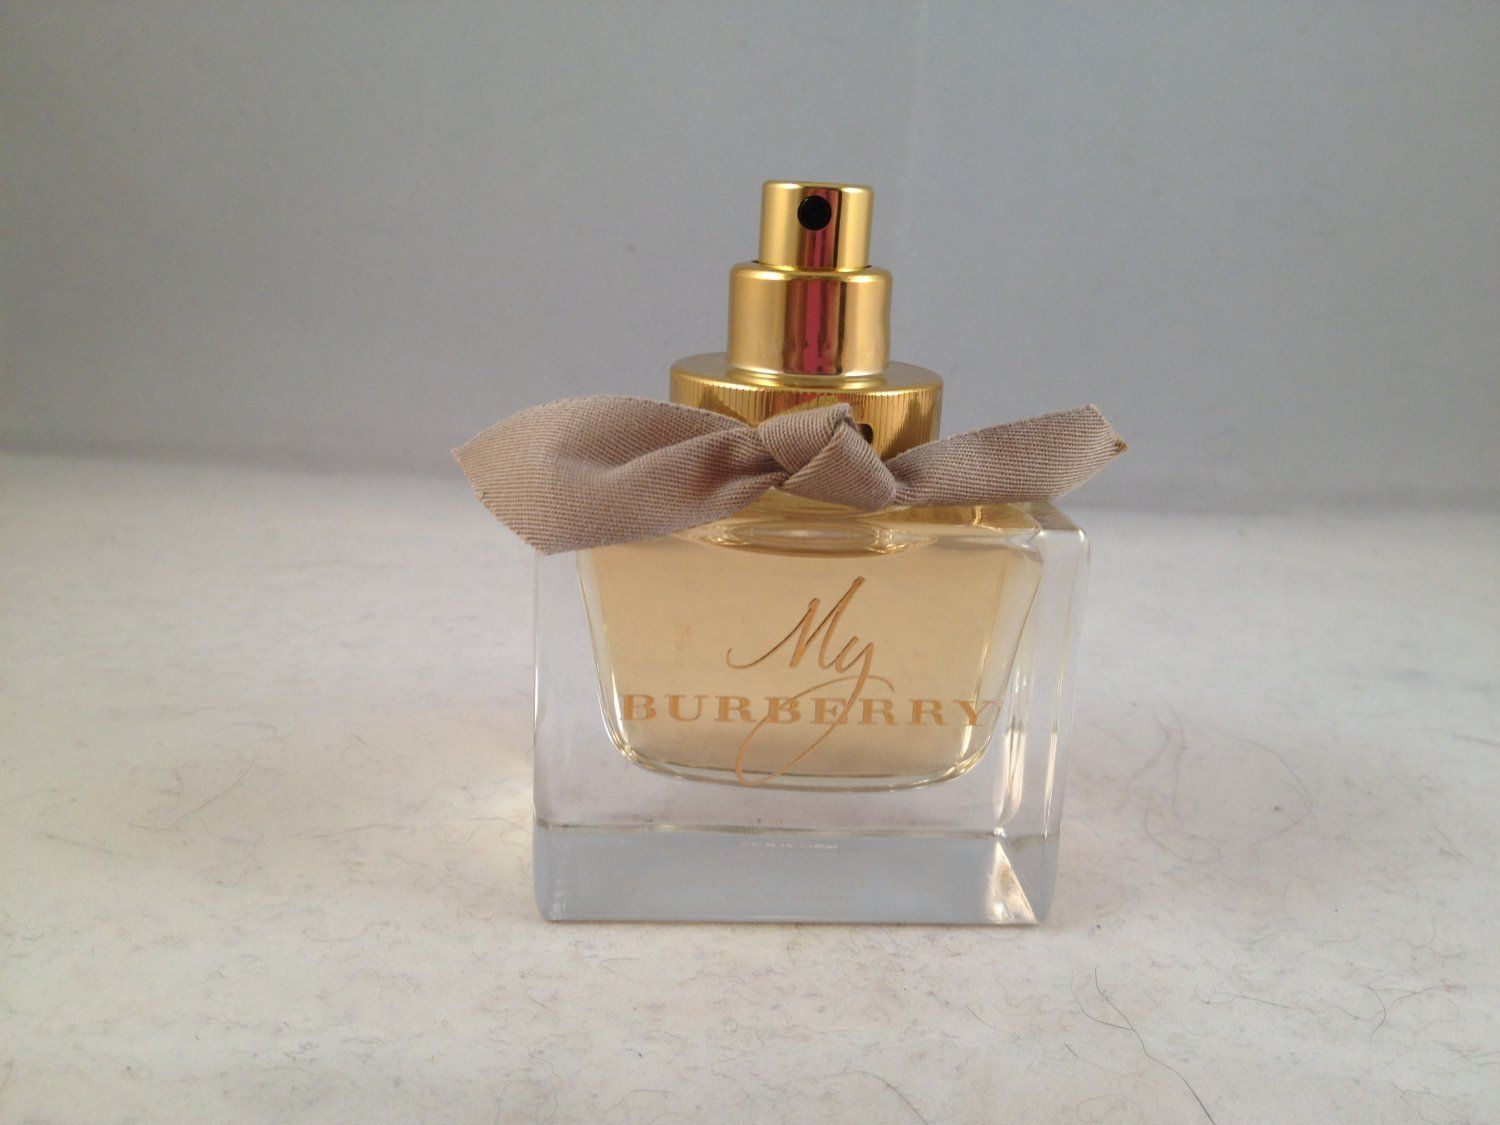 Primary image for My Burberry by Burberry Eau de Parfum for Women Perfume Fragrance Spray 1 fl oz